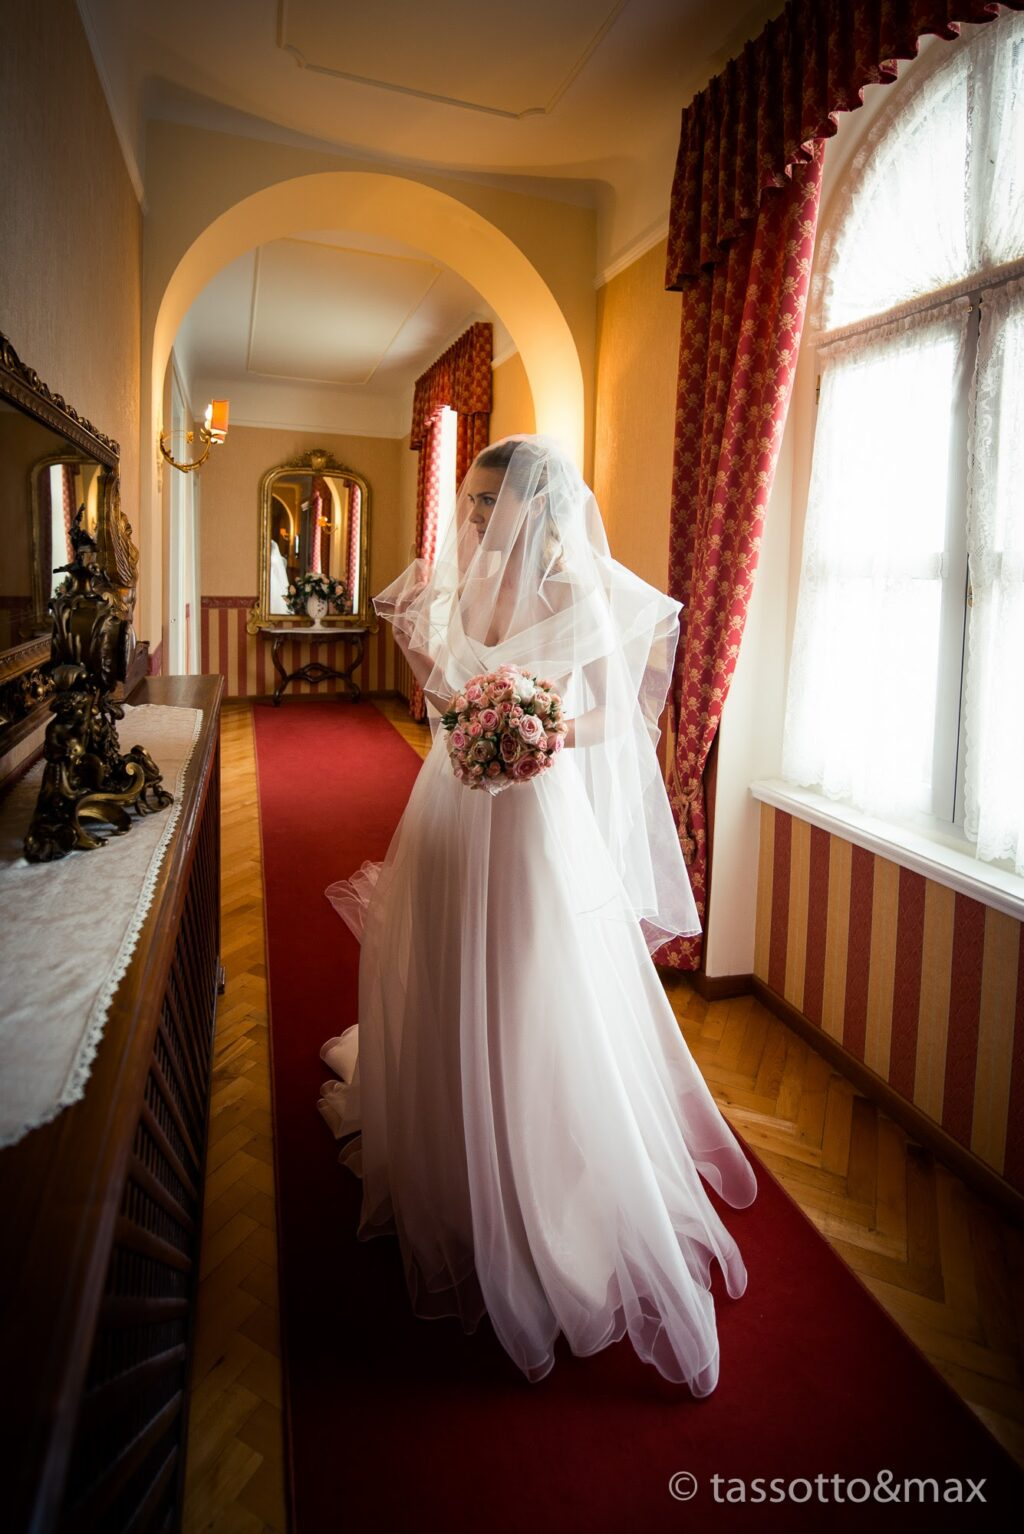 A bride with veil looking in the mirror in a corridor of an ancient castle